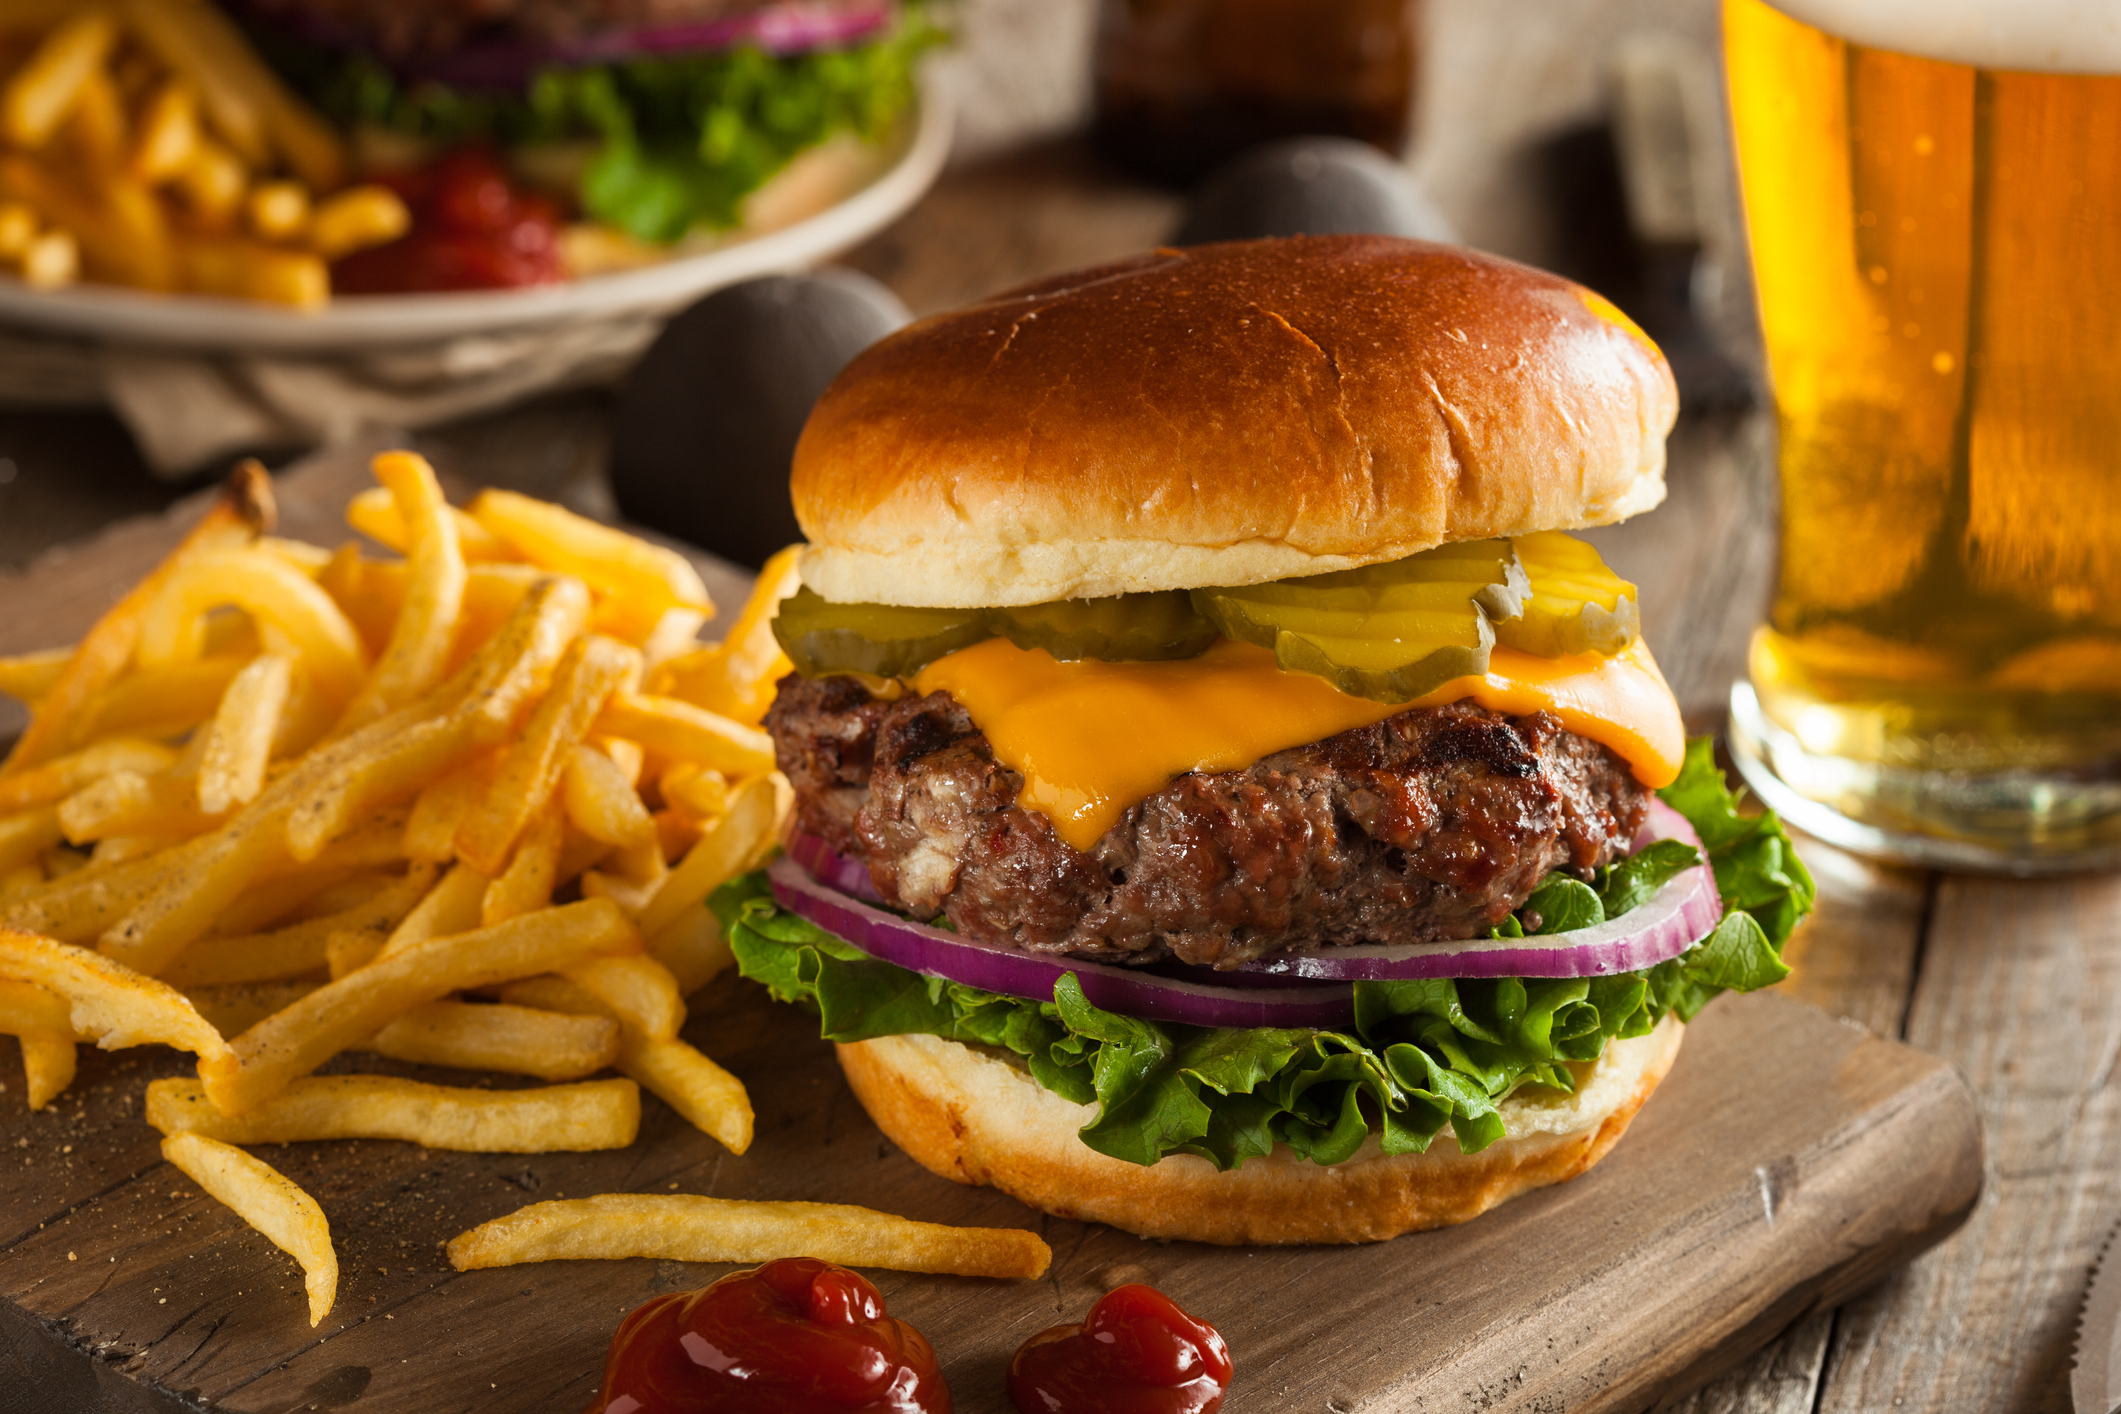 A large hamburger on a board beside a pile of fries and a glass of beer.